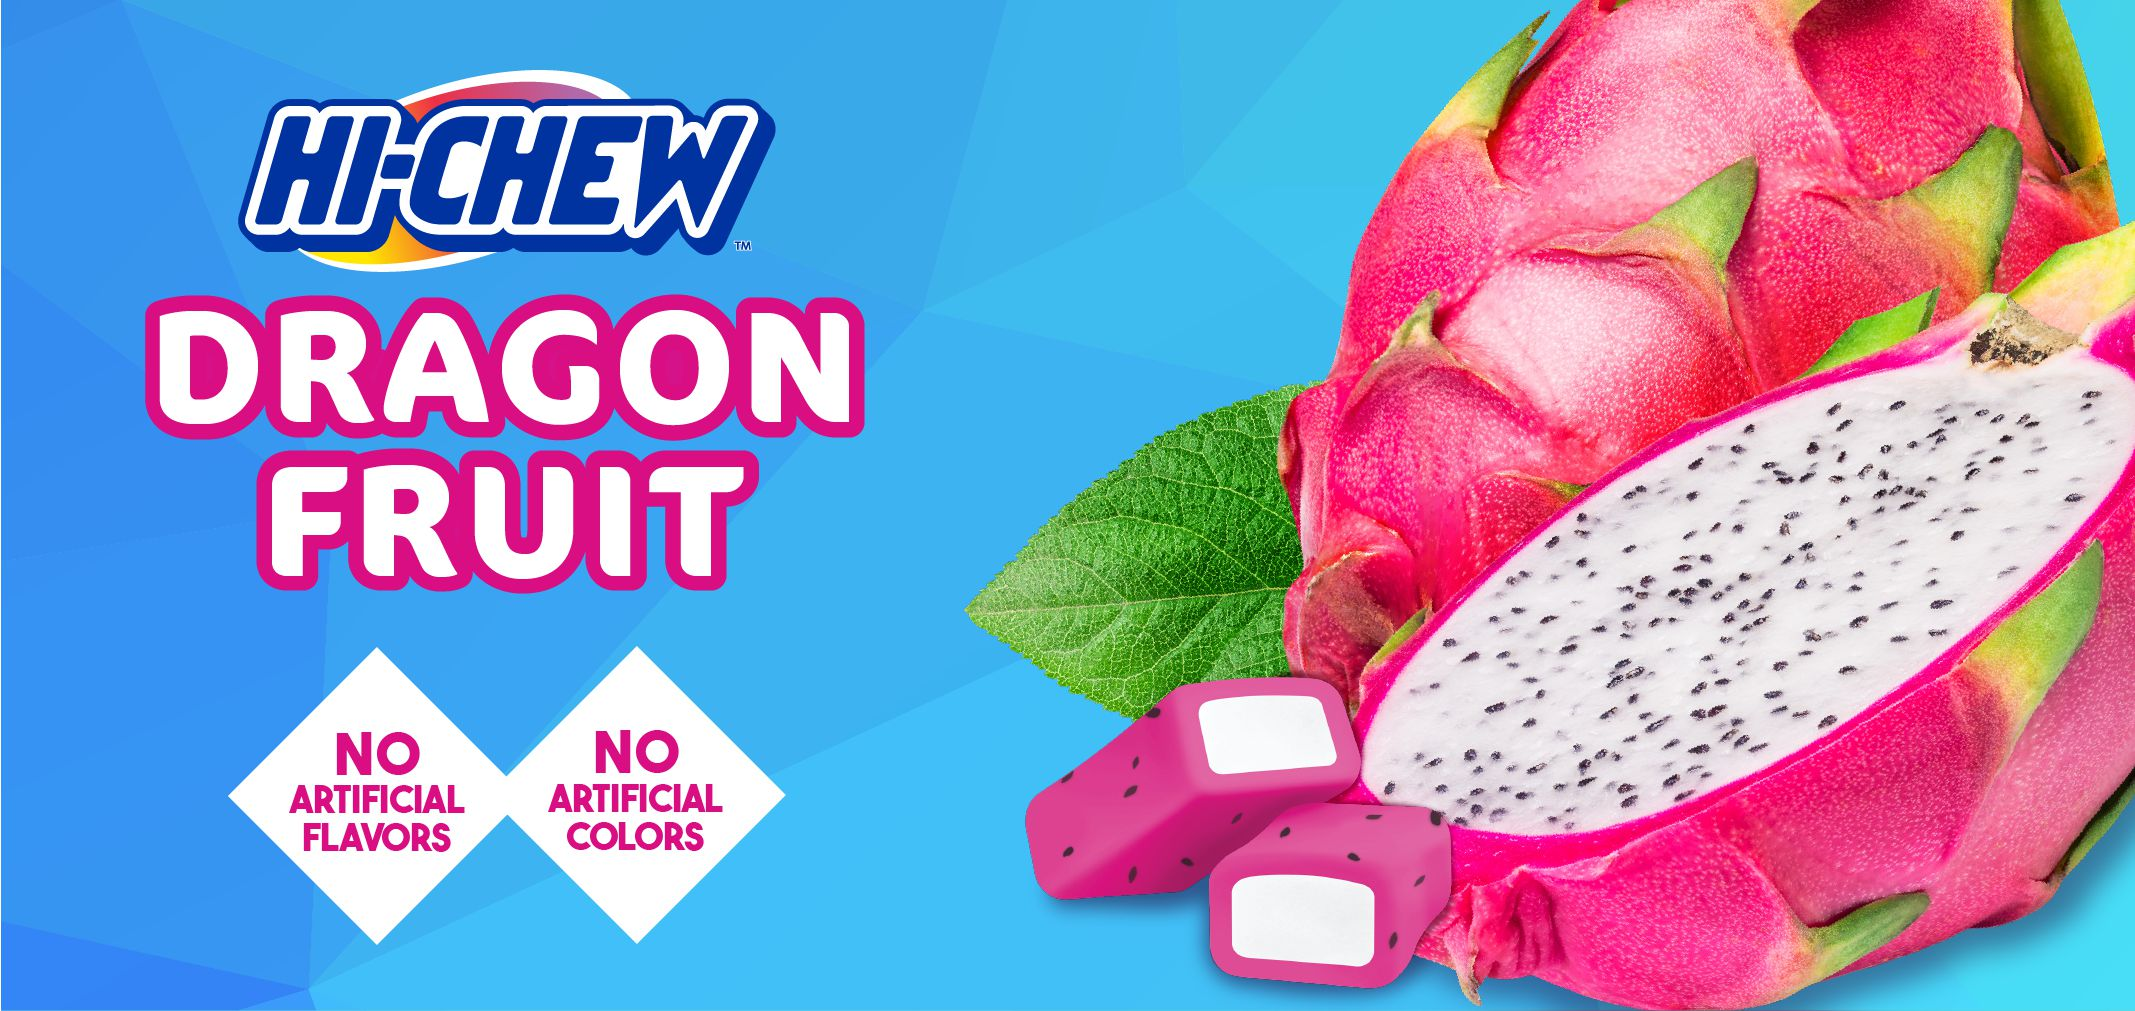 hi-chew™ dragon fruit label image